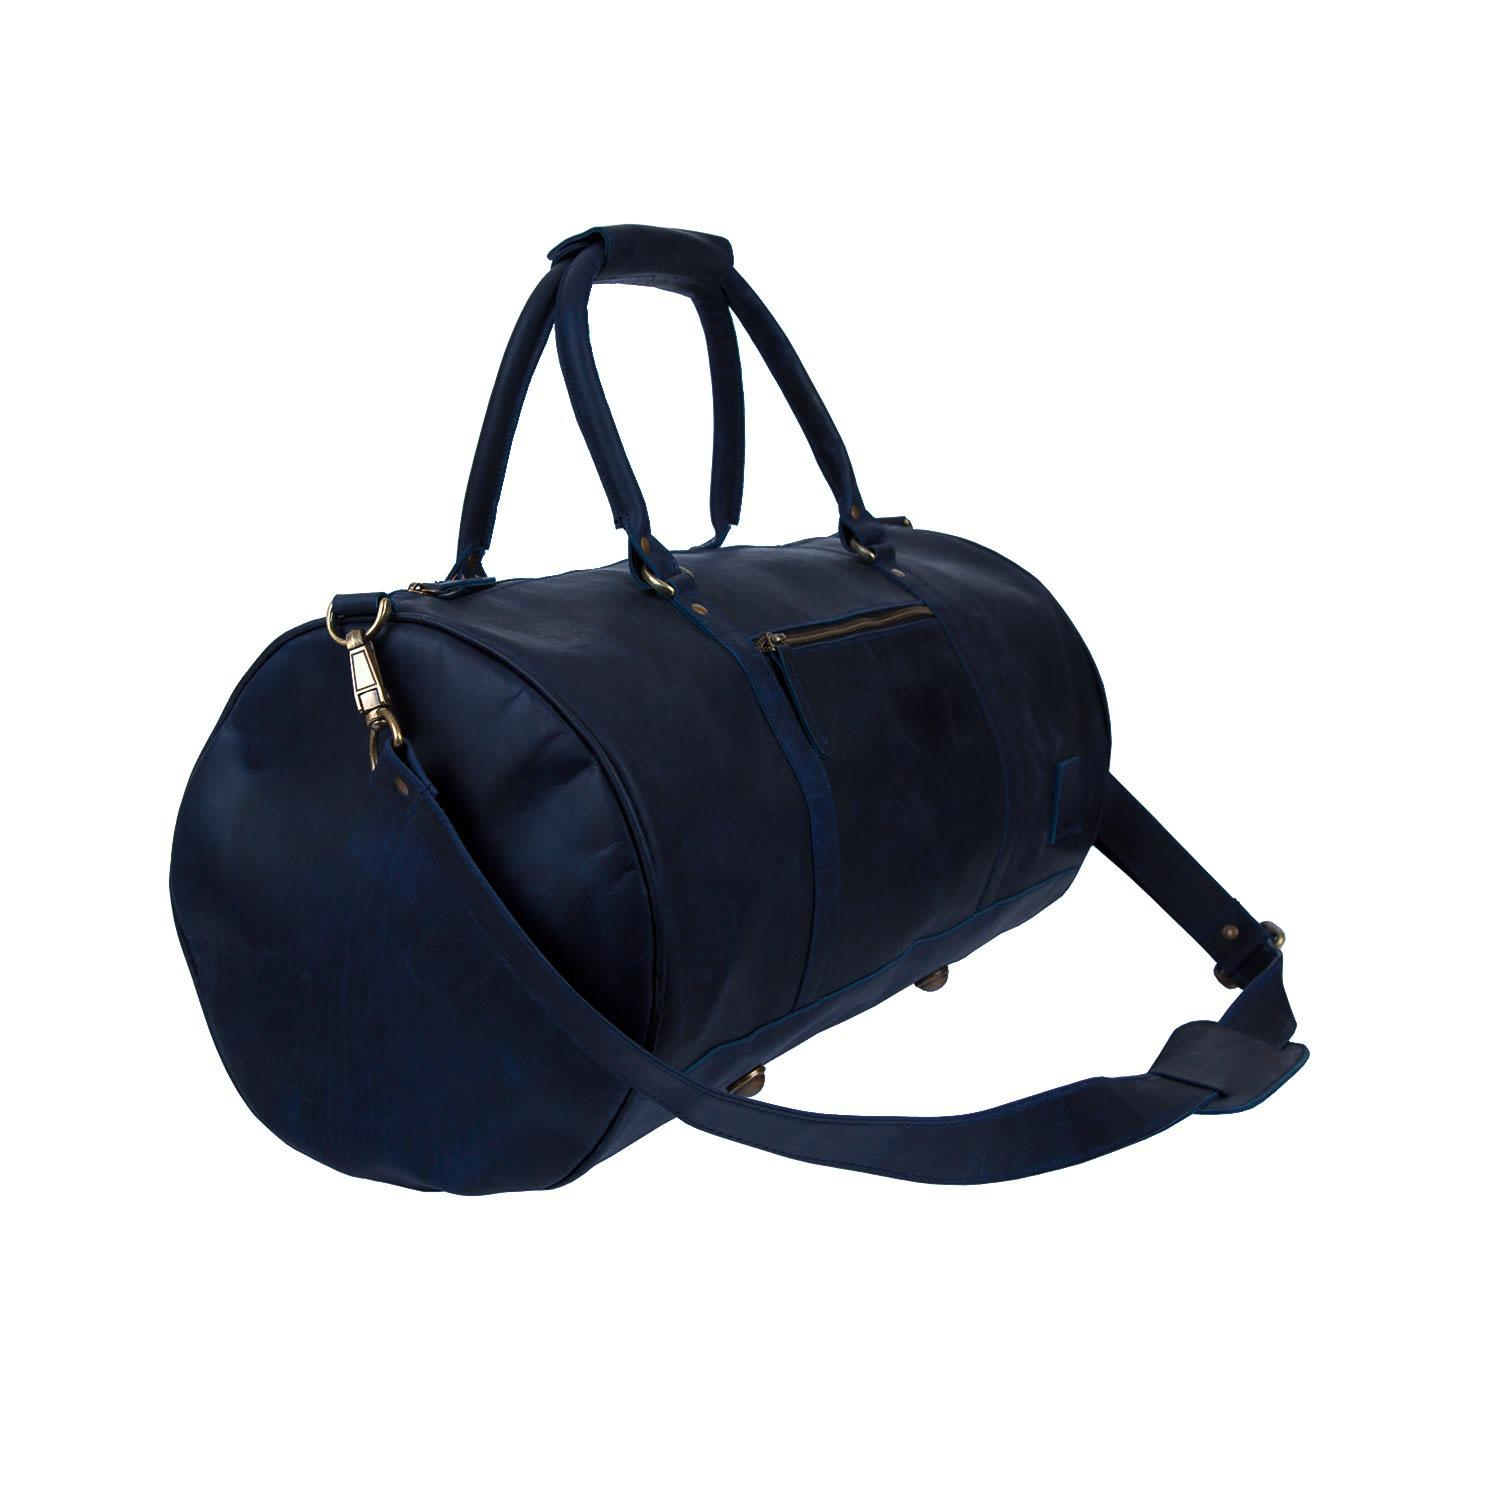 36a90670bdb Mahi Leather Leather Weekend Classic Duffle Bag In Navy in Blue for ...